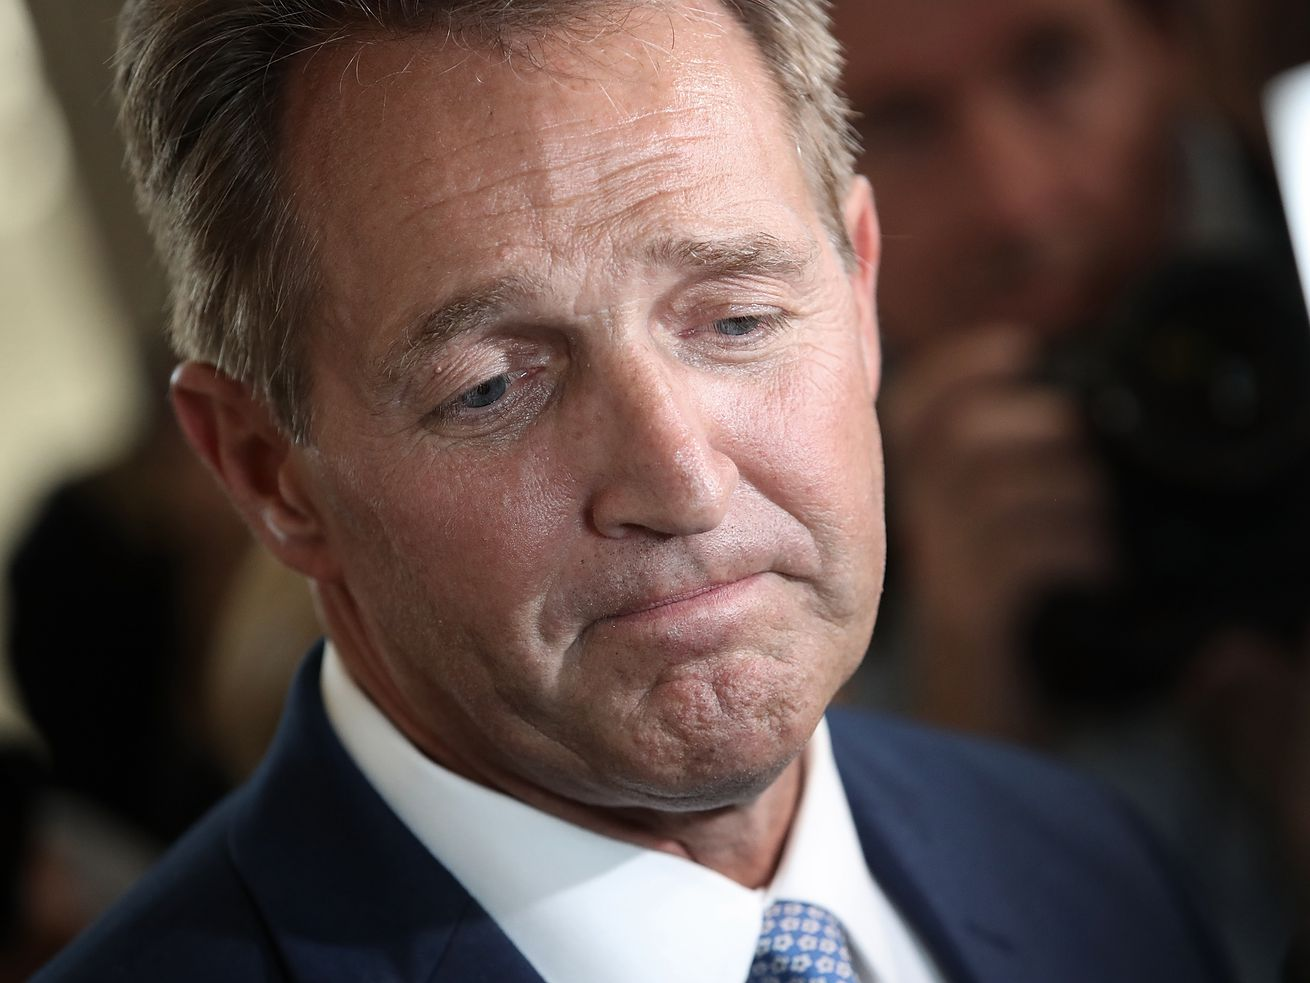 Jeff Flake after announcing he will not seek reelection on October 24, 2017.